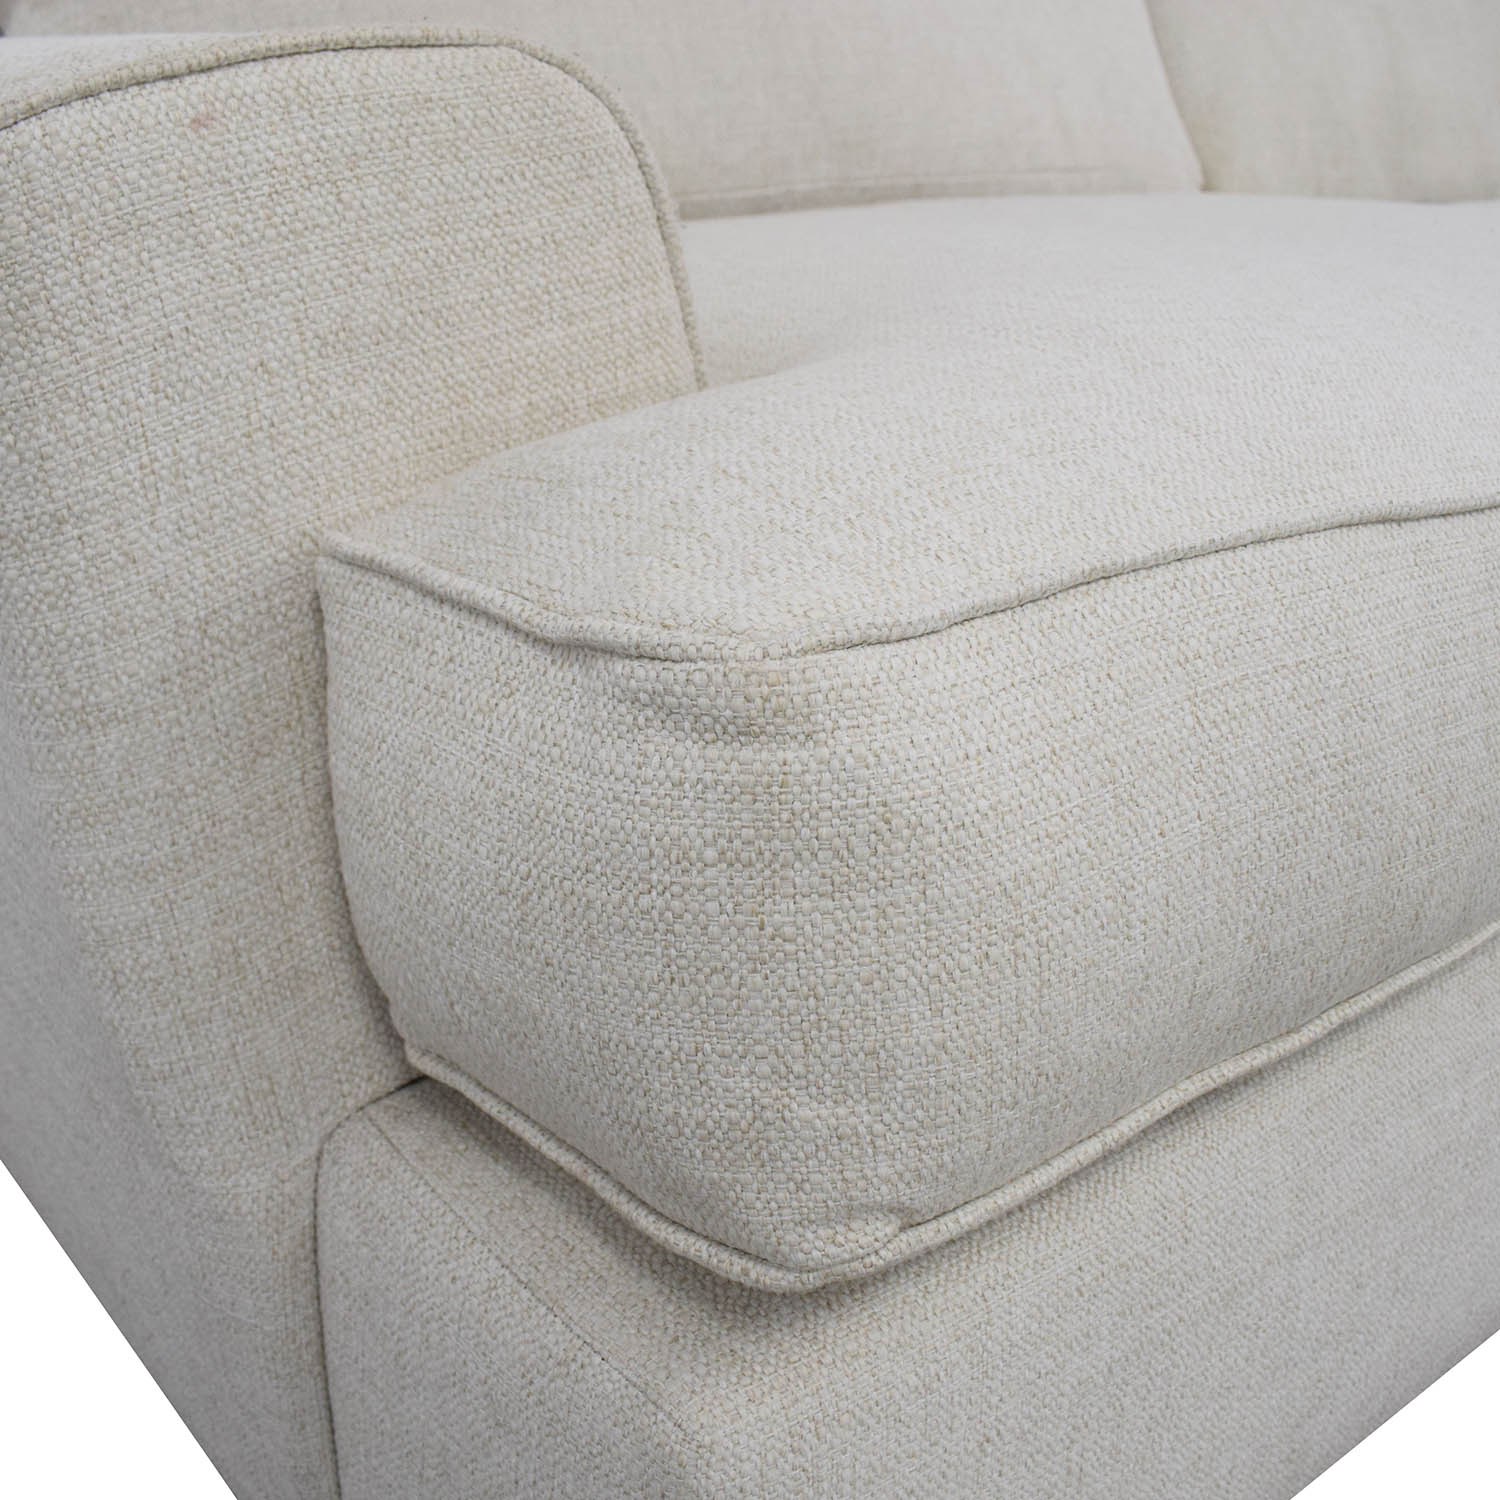 Macy's Macy's Ainsley Fabric Sofa discount